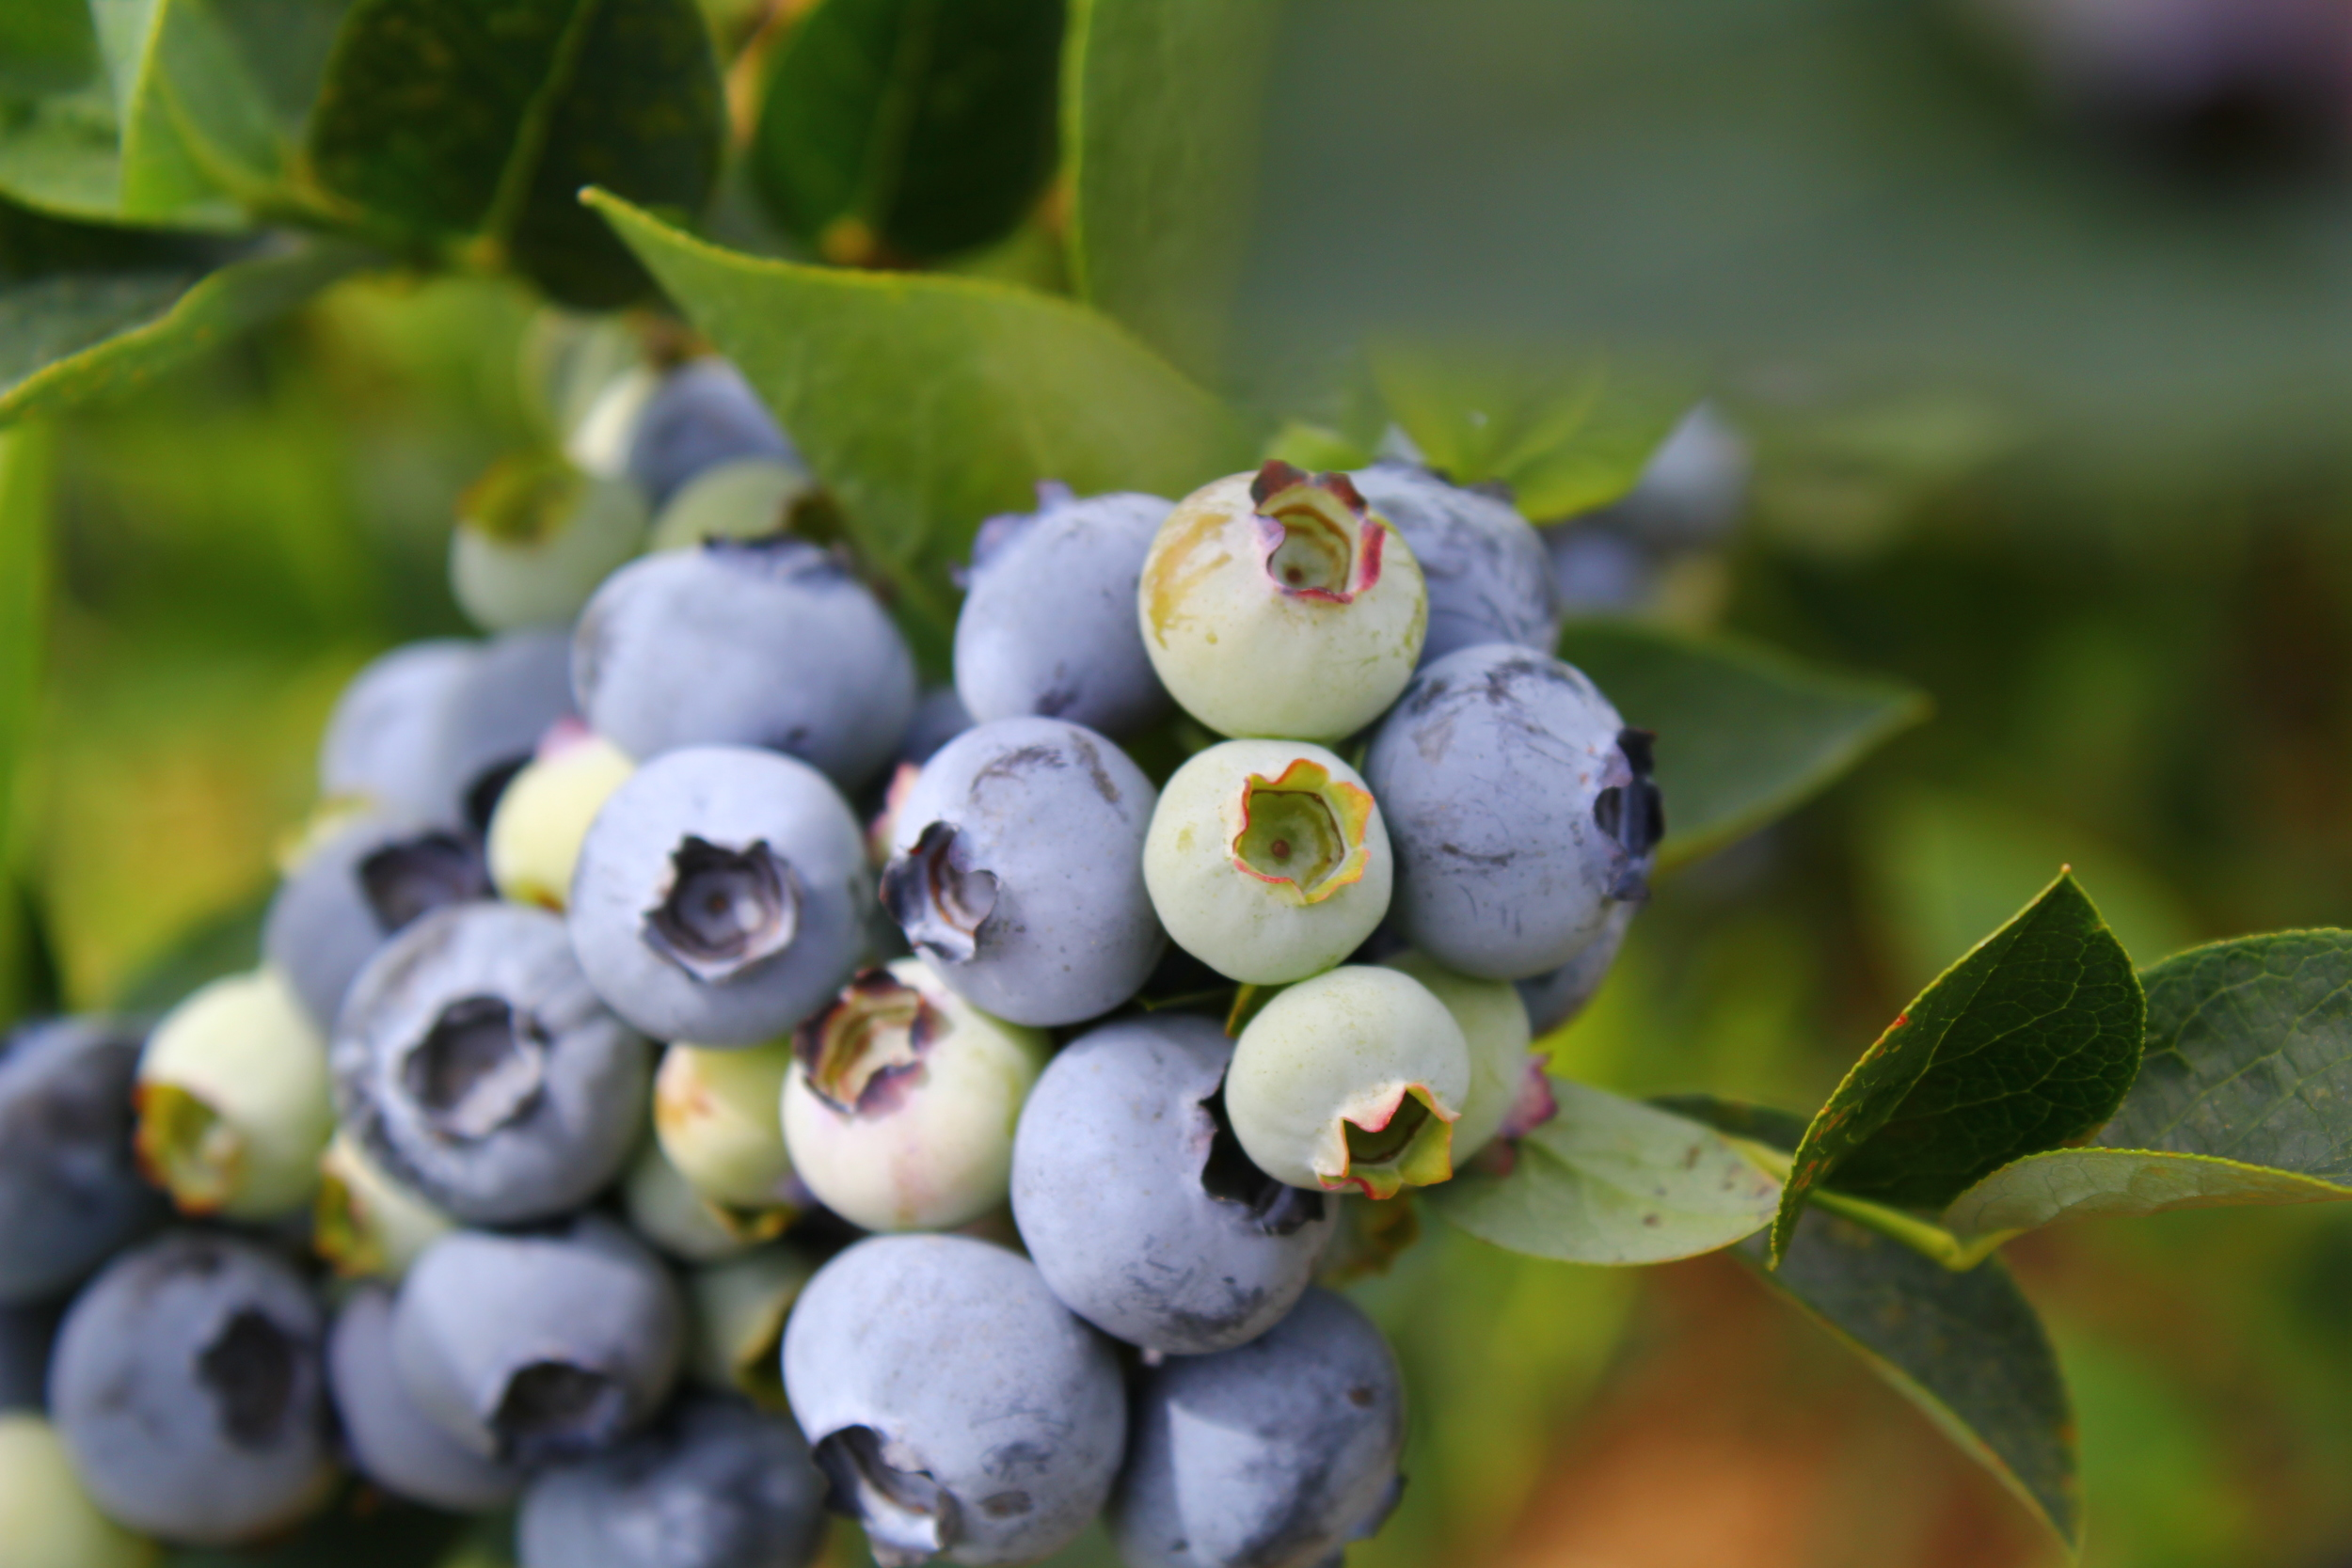 fattest blueberries my eyes have ever seen